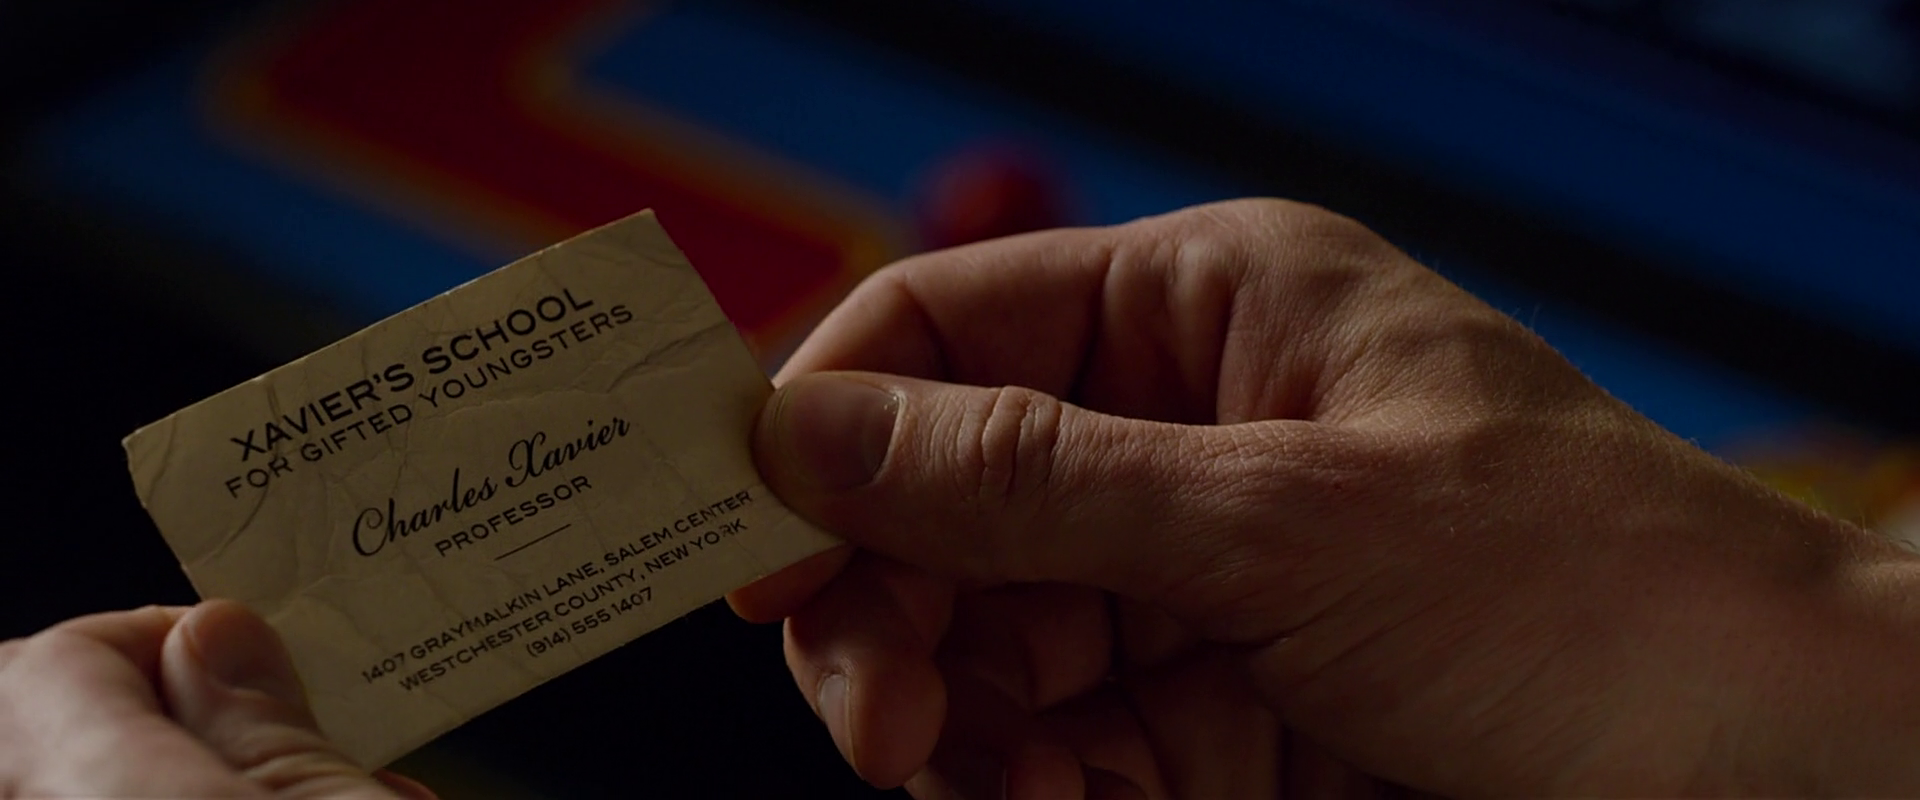 Image charles xavier business card x men apocalypseg x charles xavier business card x men apocalypseg magicingreecefo Image collections